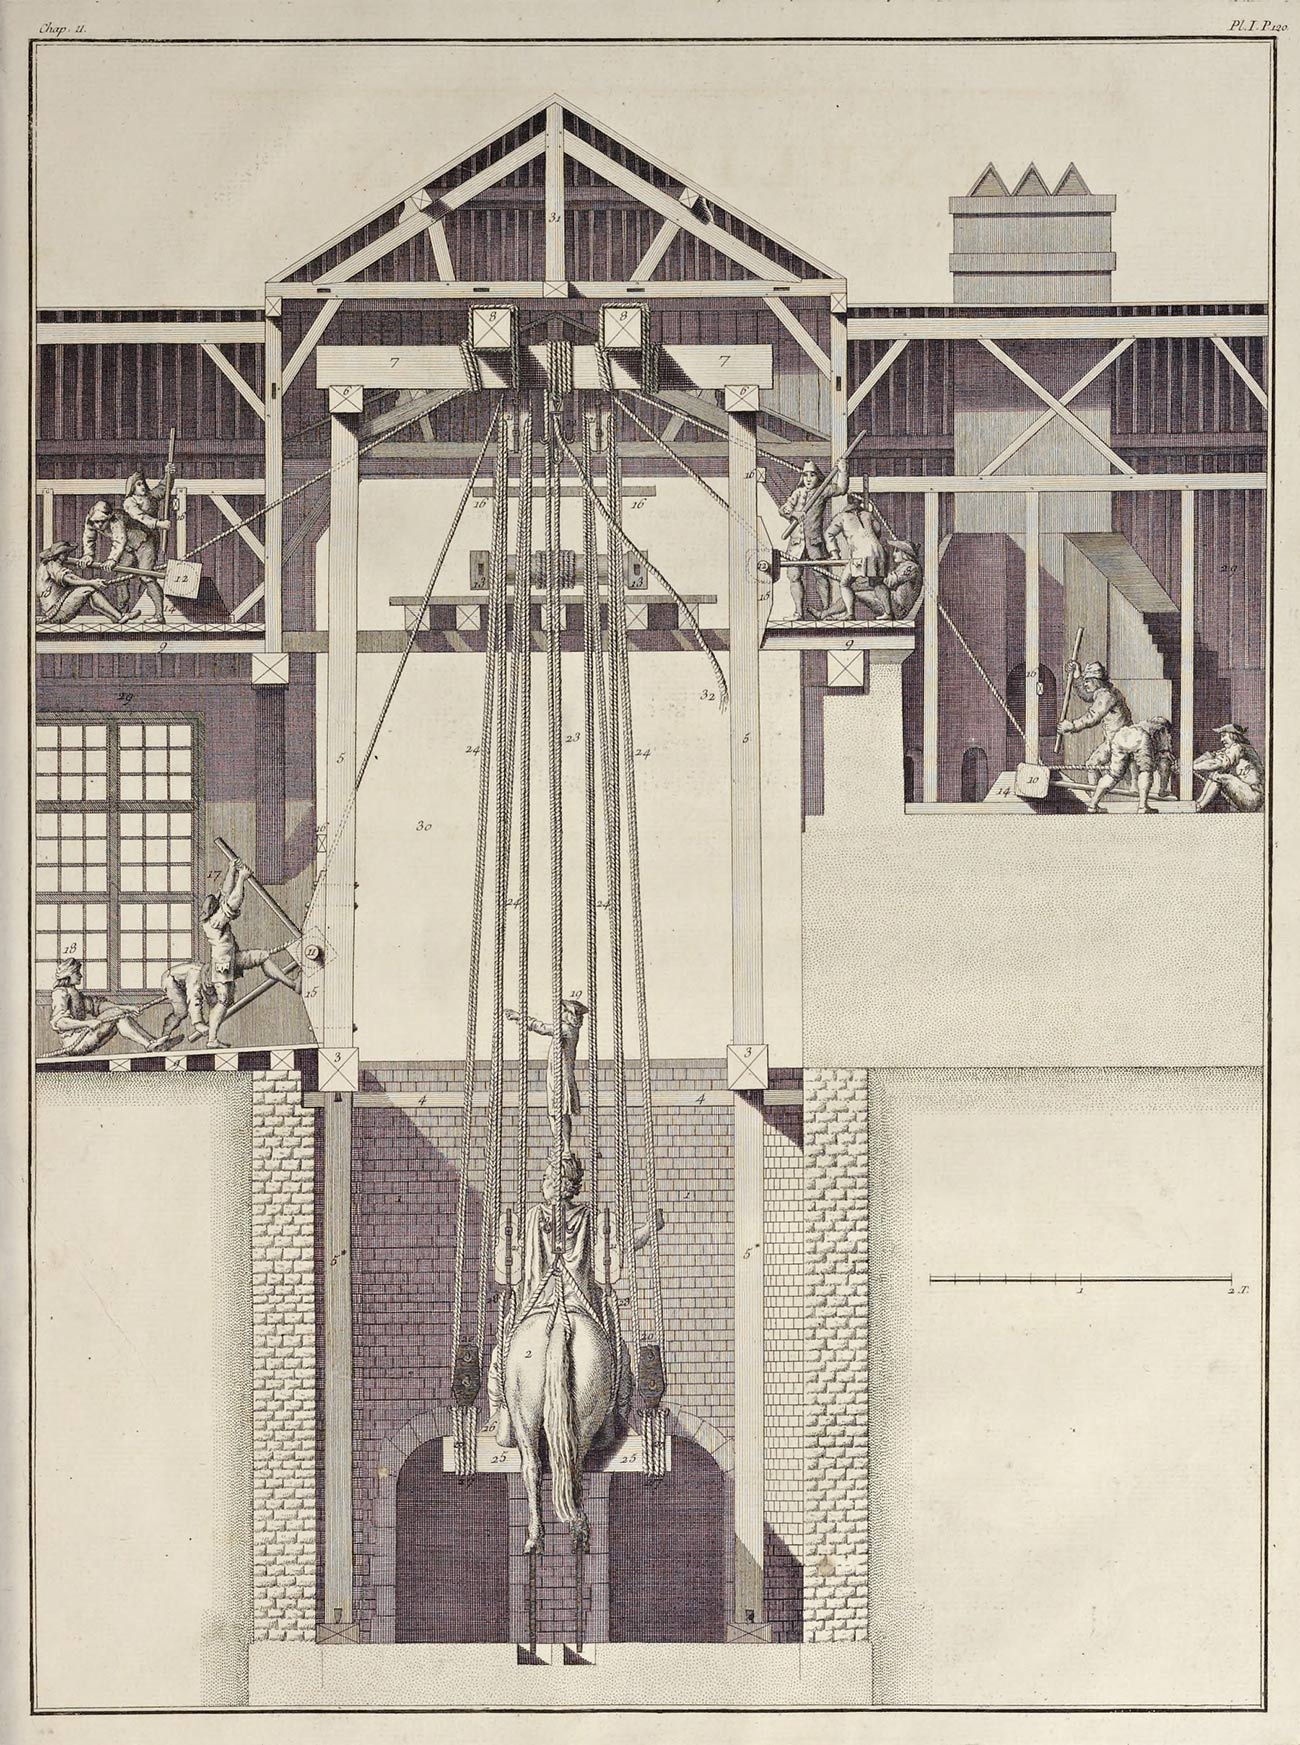 Detailed print showing a large bronze sculpture being hoisted with ropes out of a foundry pit where it had been cast